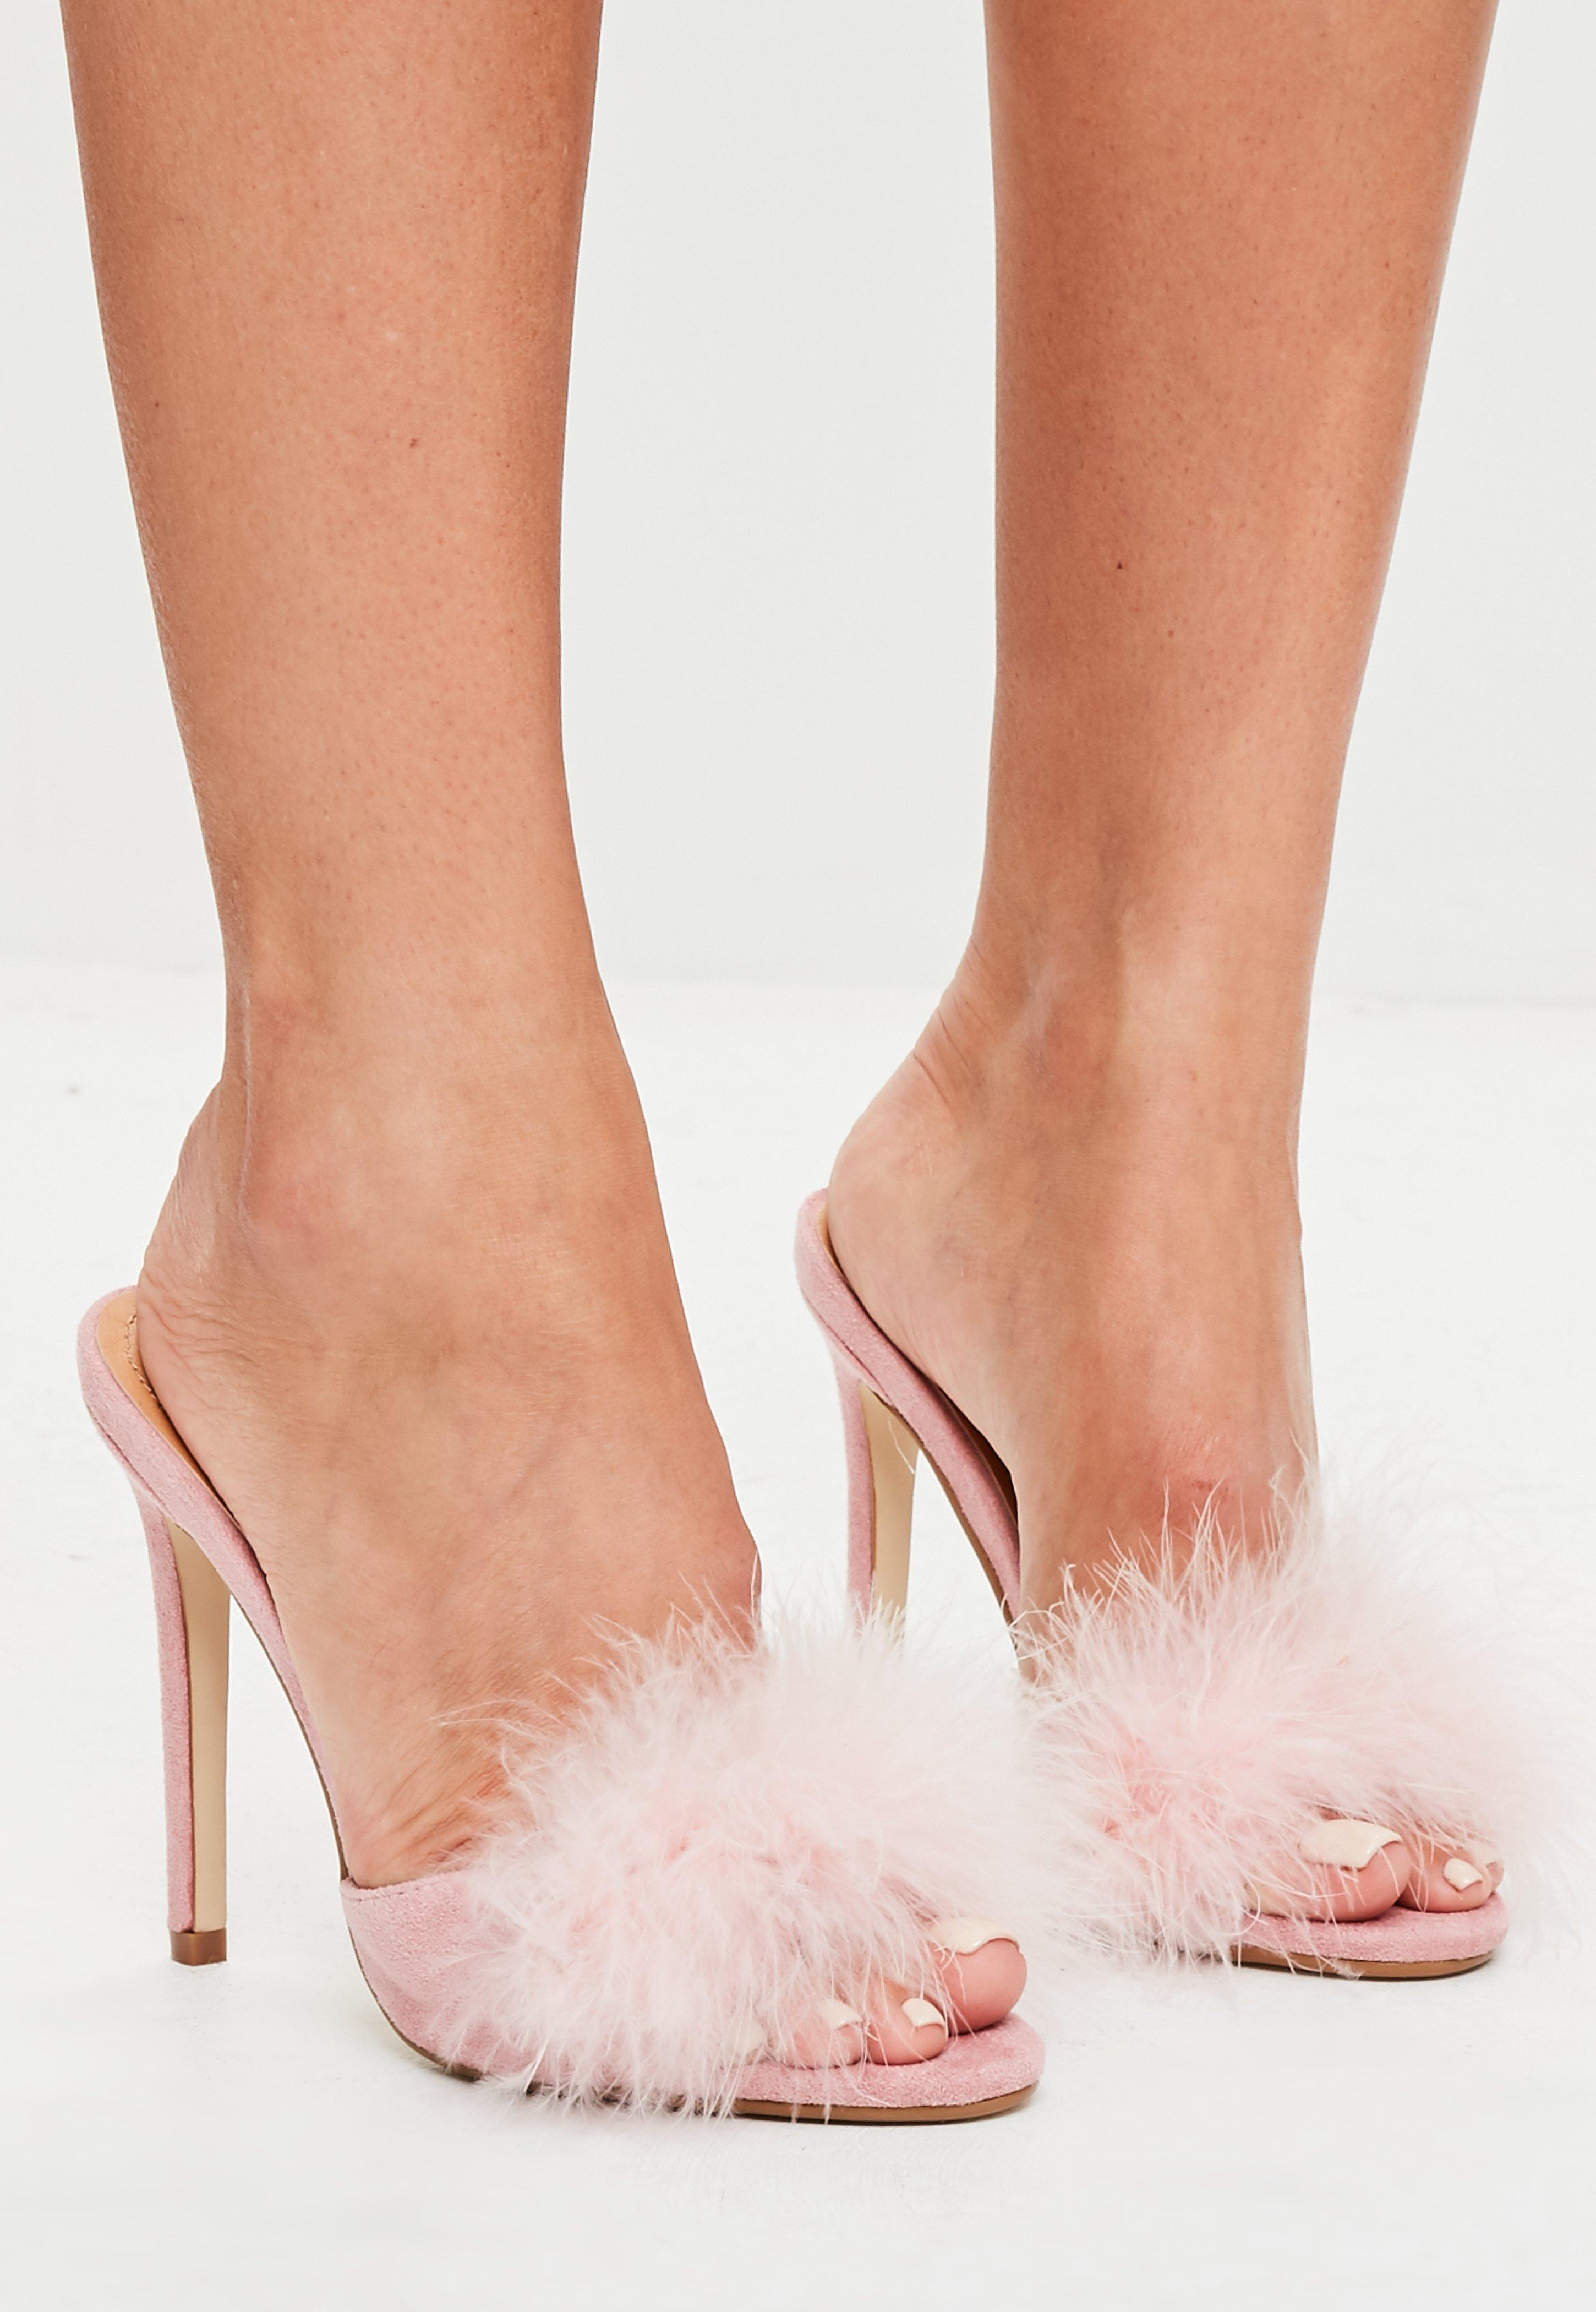 089127a2fce Lyst - Missguided Pink Feather Heeled Mules in Pink